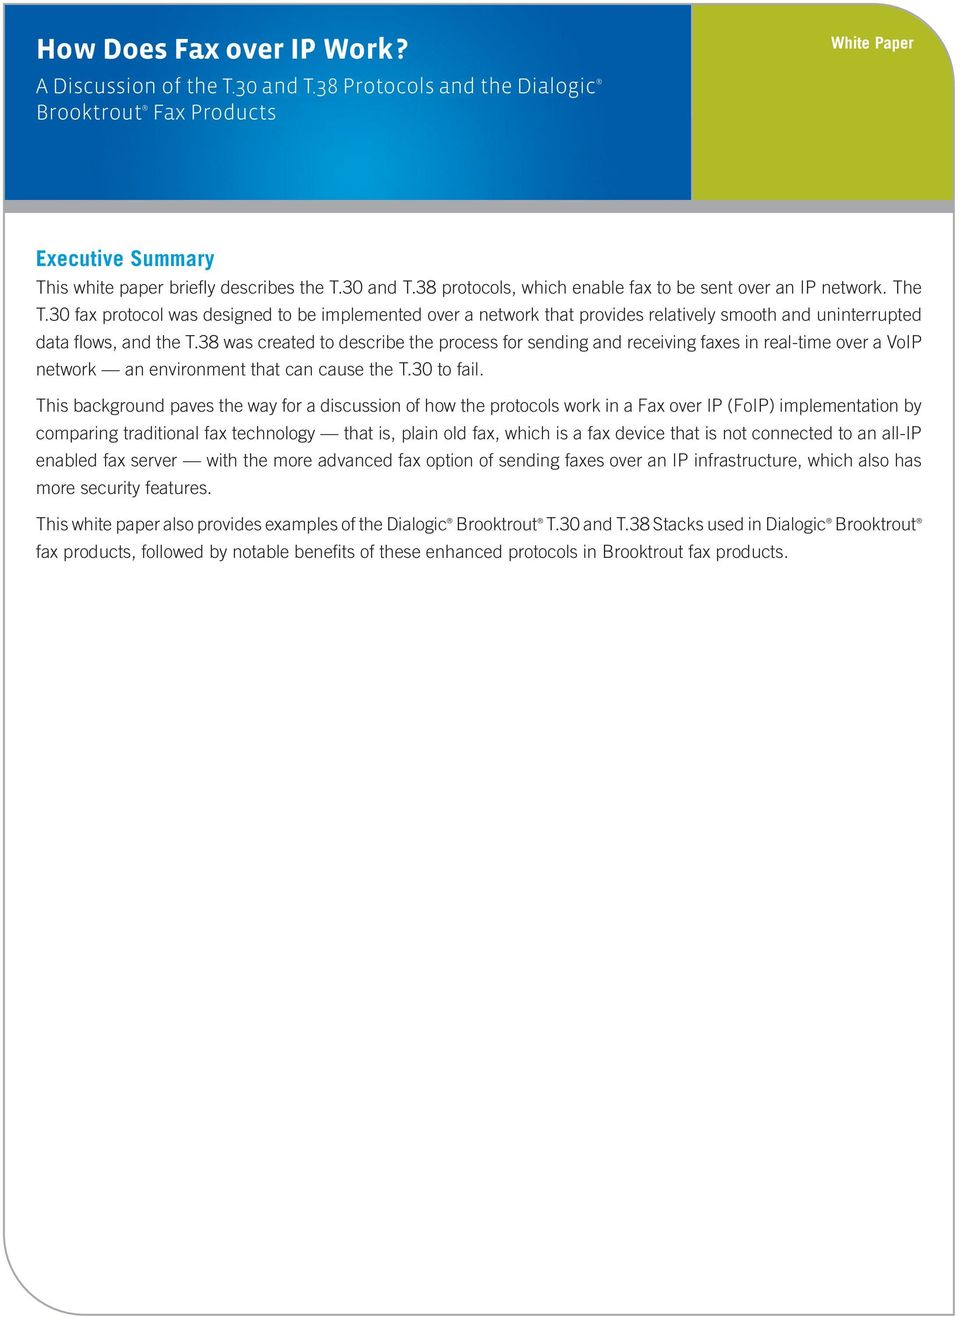 38 was created to describe the process for sending and receiving faxes in real-time over a VoIP network an environment that can cause the T.30 to fail.